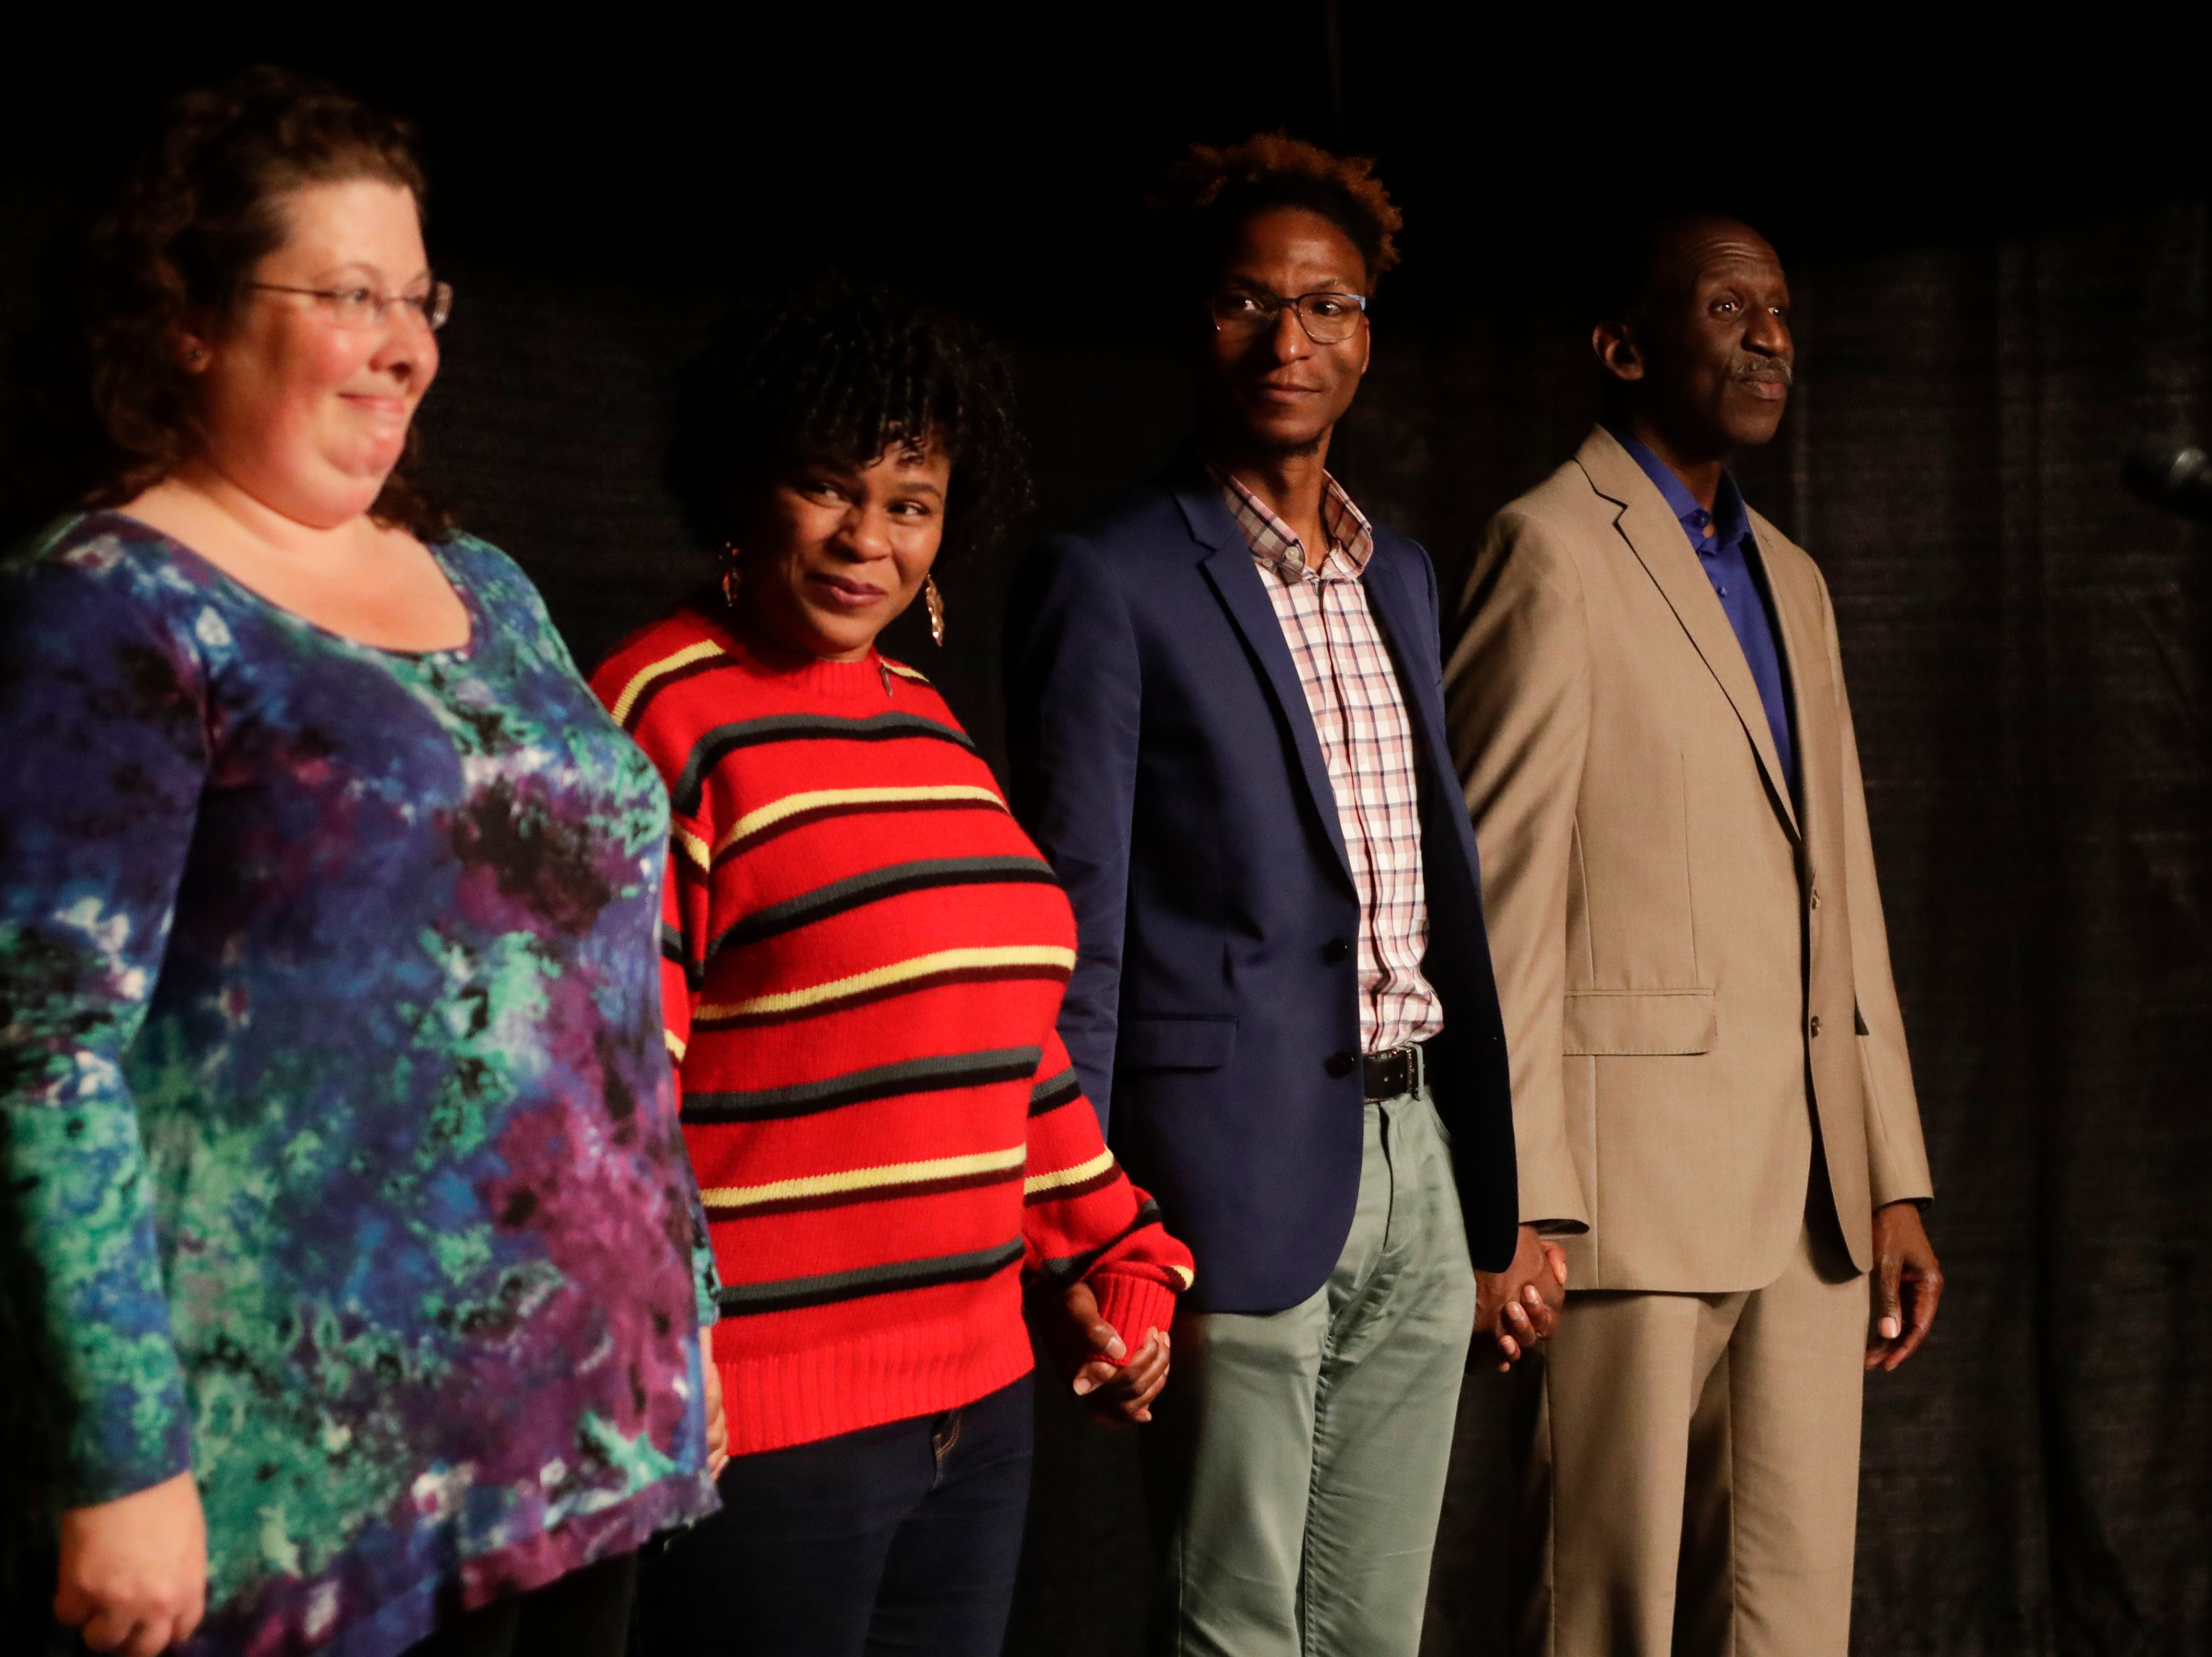 "The storytellers come together on the stage after sharing during the Storytellers event ""In the Blink of an Eye: Stories of Tragedy, Triumph and Transformation"" at the American Legion Post 13 in Tallahassee Friday, Nov. 30, 2018."